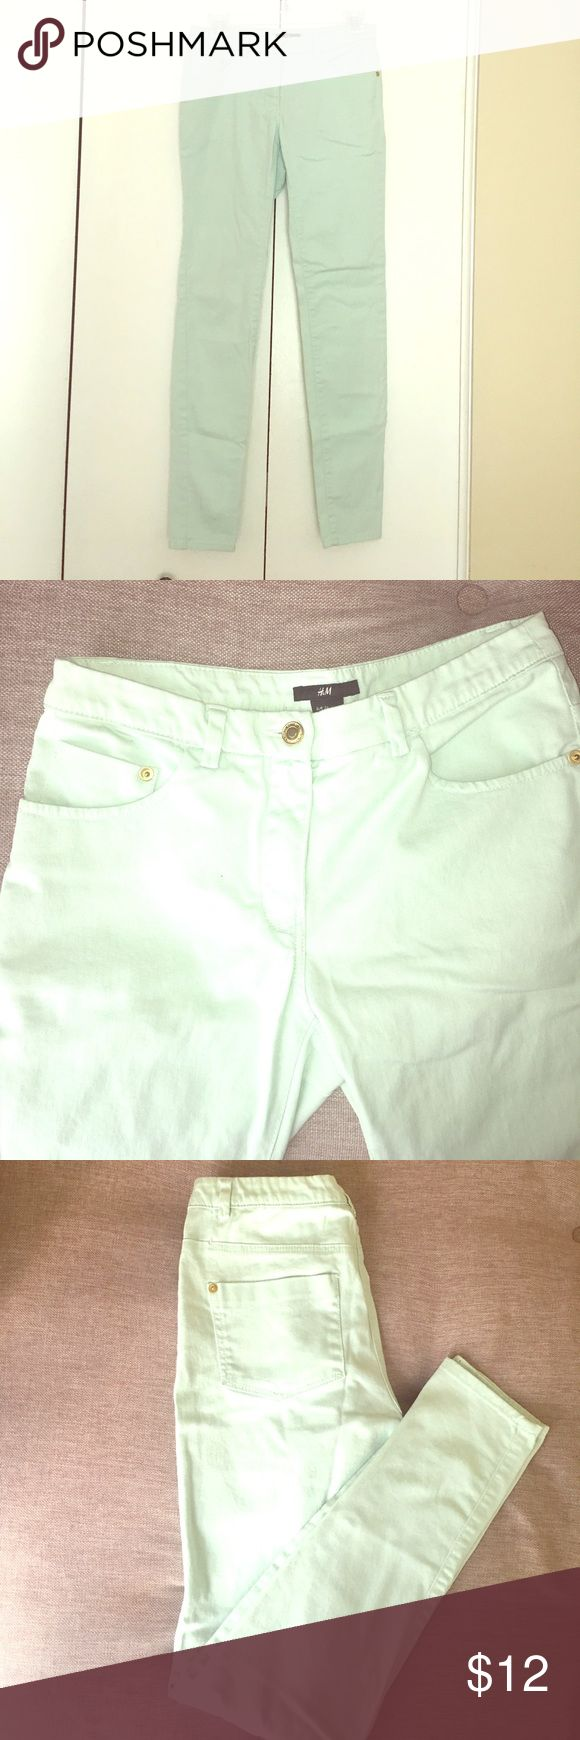 H&M Mint Green Jeans Mint green jeans from H&M in great condition; worn only 2 or 3 times. Size 6, but fits more like a 2-4. Mid- to high-rise. Straight leg, but not super skinny. Color is much more saturated than I was able to capture in the photos. Real color is closest to first photo. Gold button accents. H&M Jeans Straight Leg